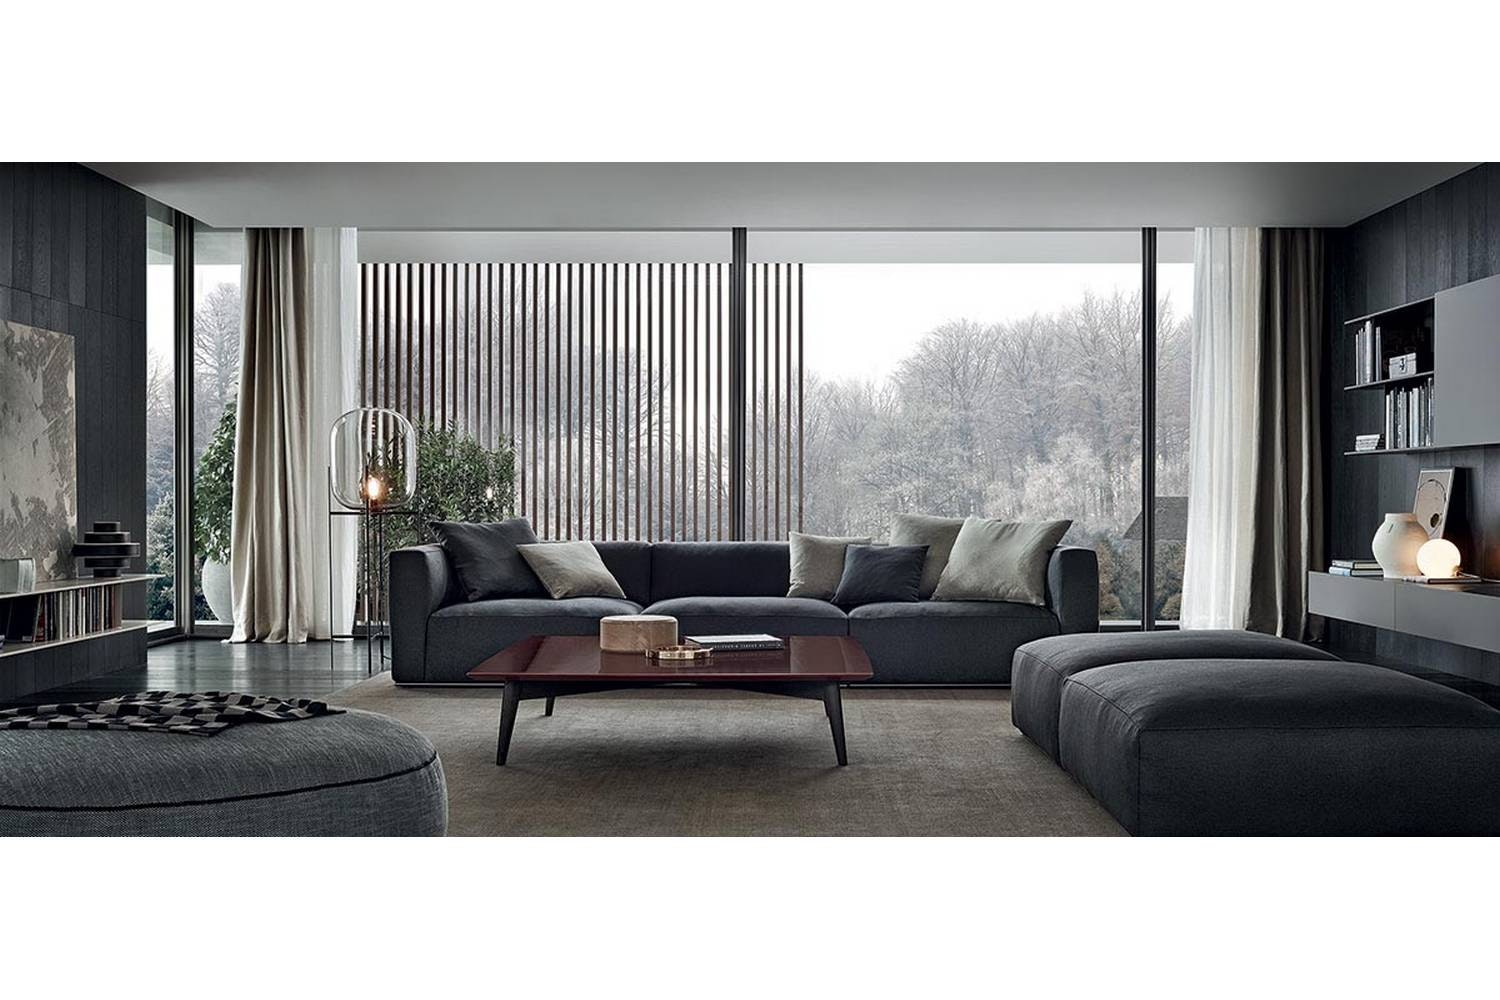 Shangai Ottoman by Carlo Colombo for Poliform